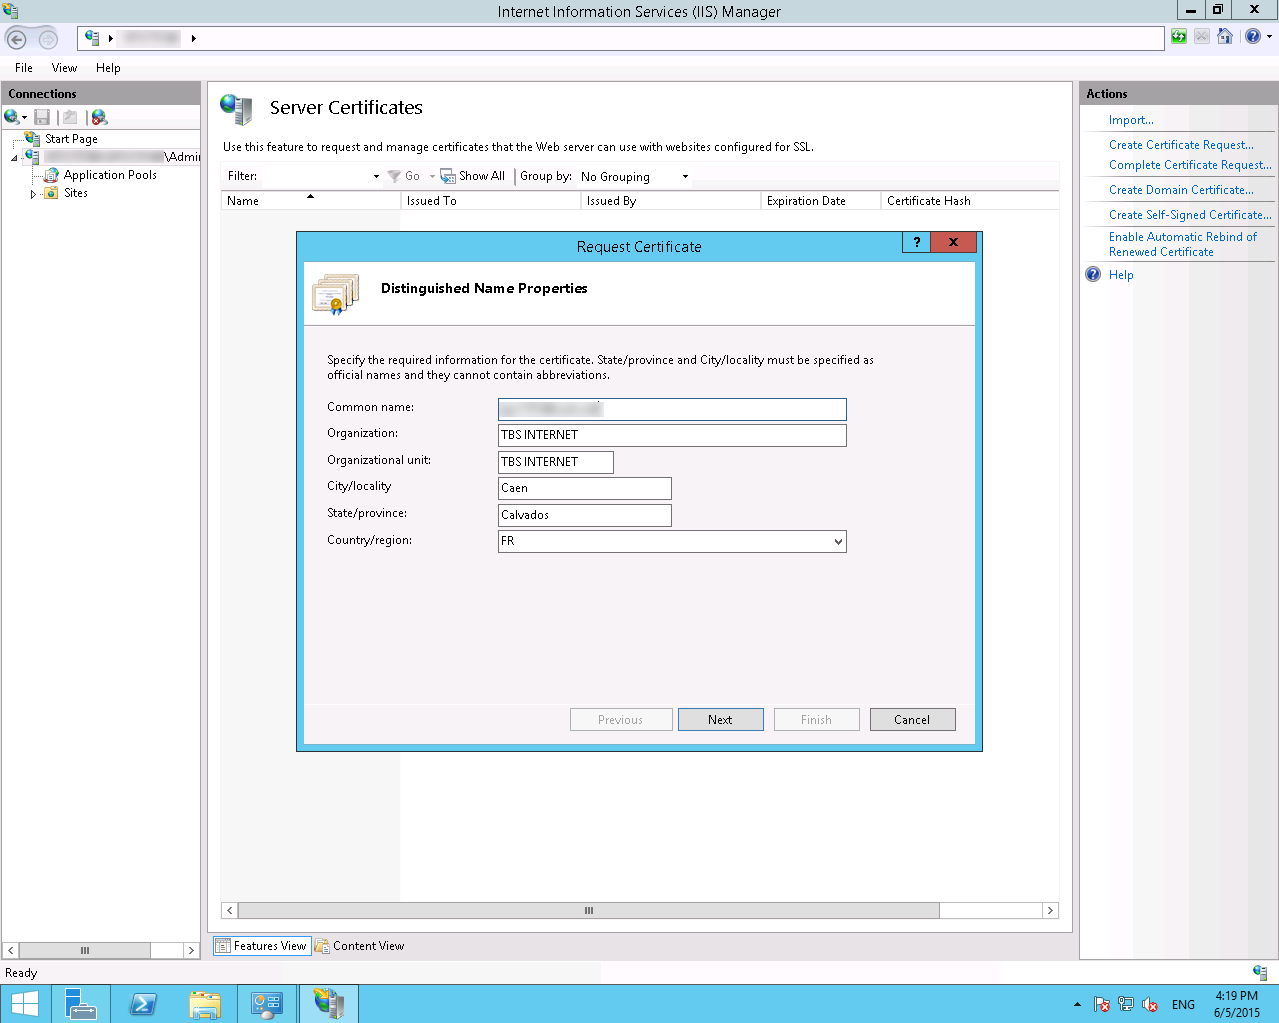 Generate A Csr With Microsoft Iis85 And Windows Server 2012r2